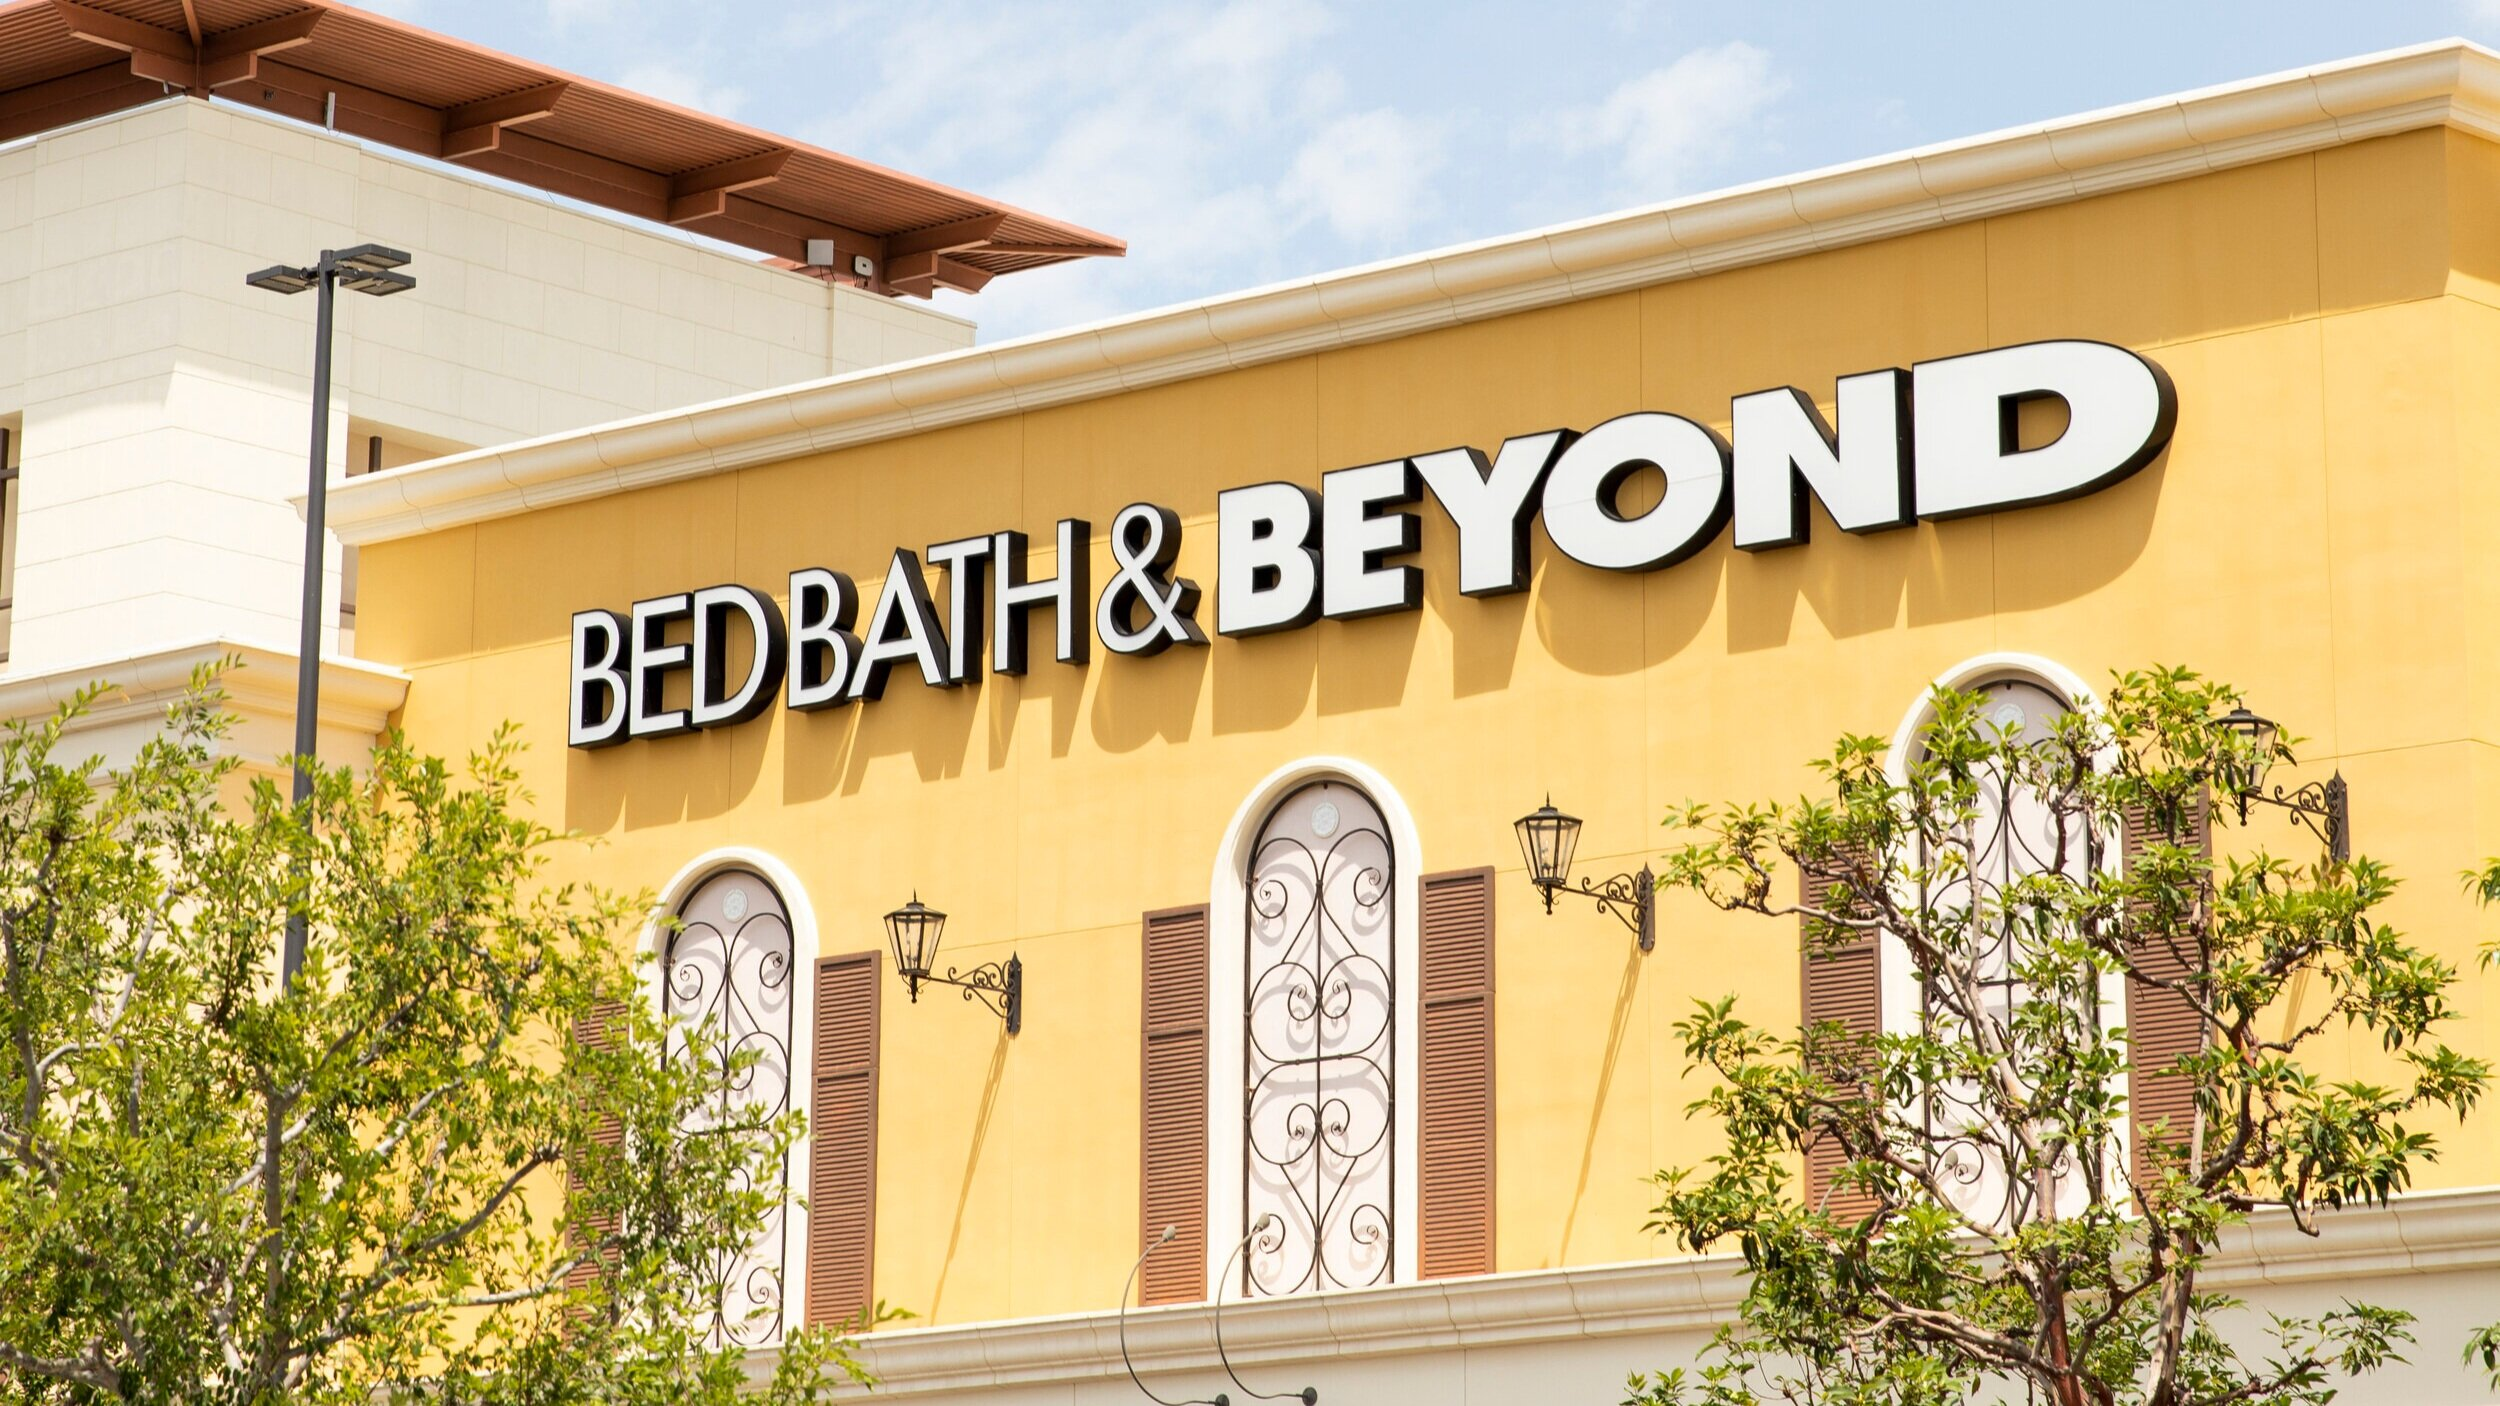 Bed Bath Beyond Bella Terra An obligor is more vulnerable than the obligors rated 'bb', but the obligor currently has the capacity to meet its financial commitments. bed bath beyond bella terra